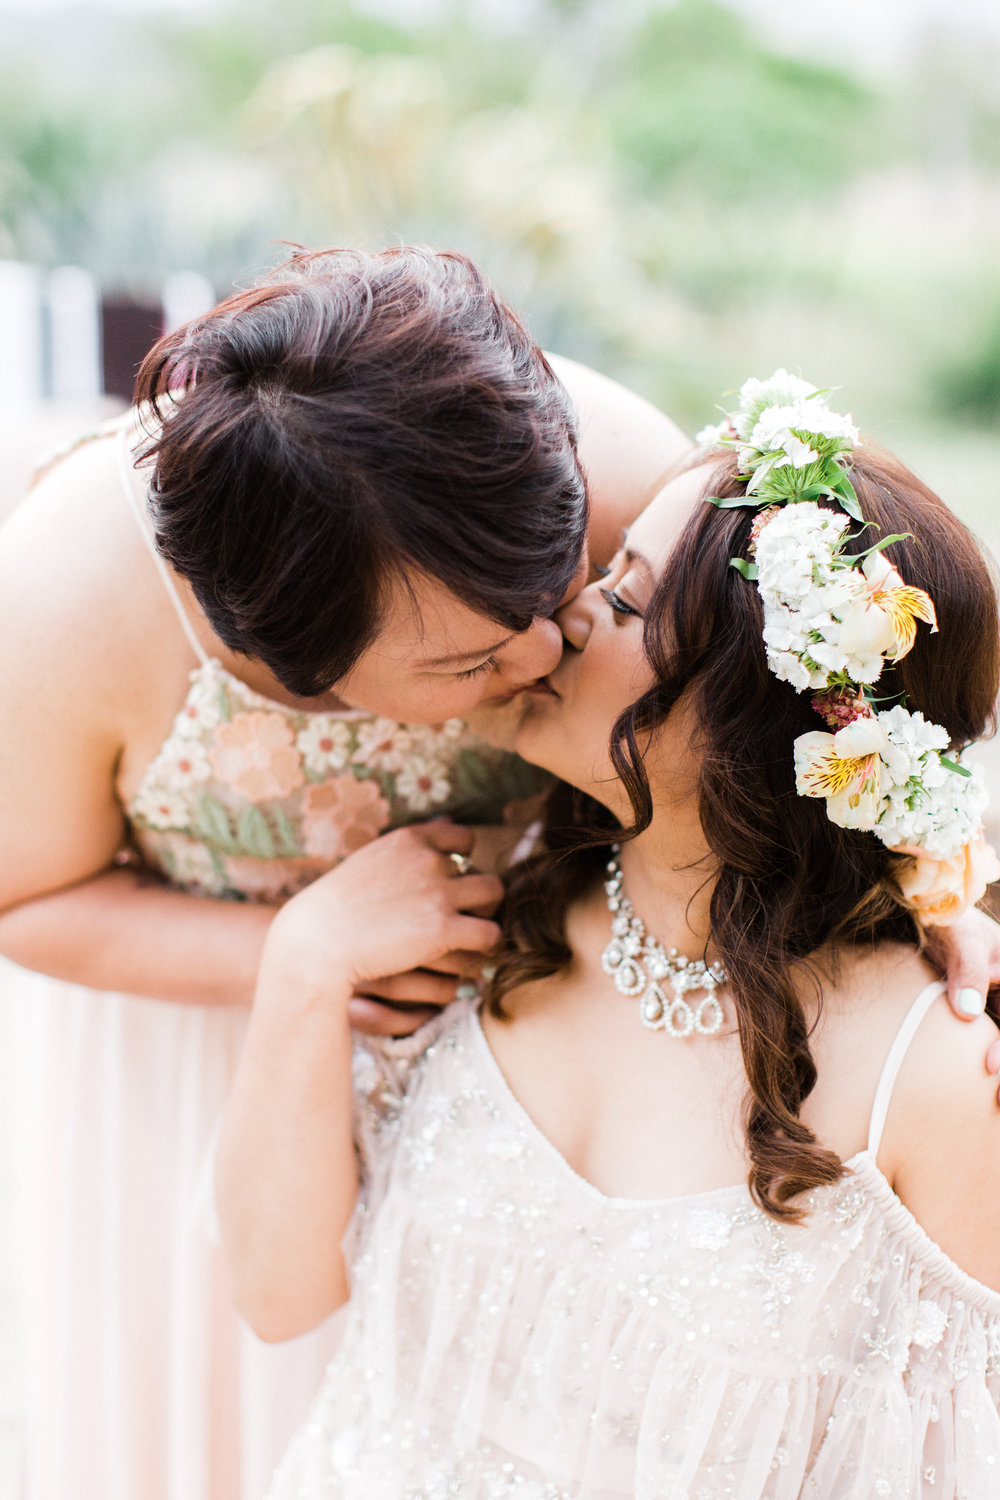 Anna Delores Photography_Miguez & KD 04.16.17-583.jpg